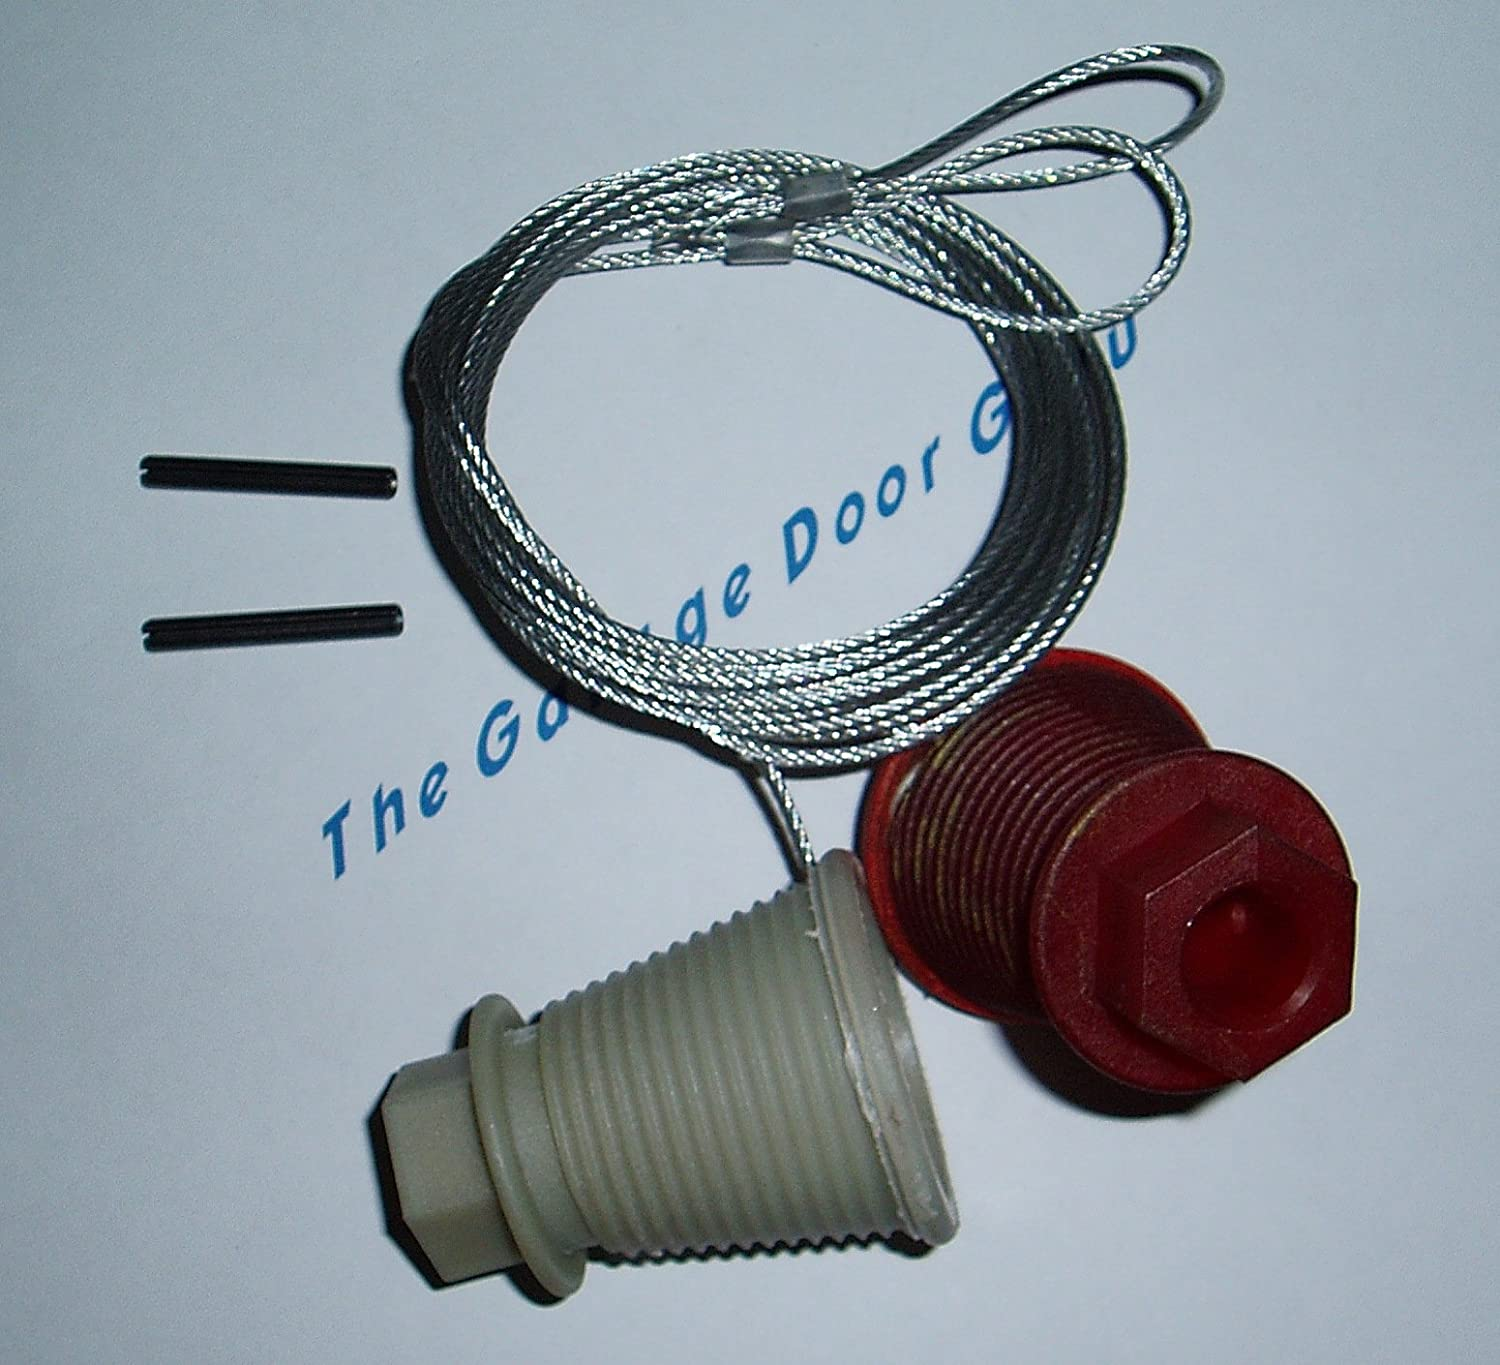 Cardale Garage Door Spares Parts Cones and Cables CD45 Gear Canopy by Cardale